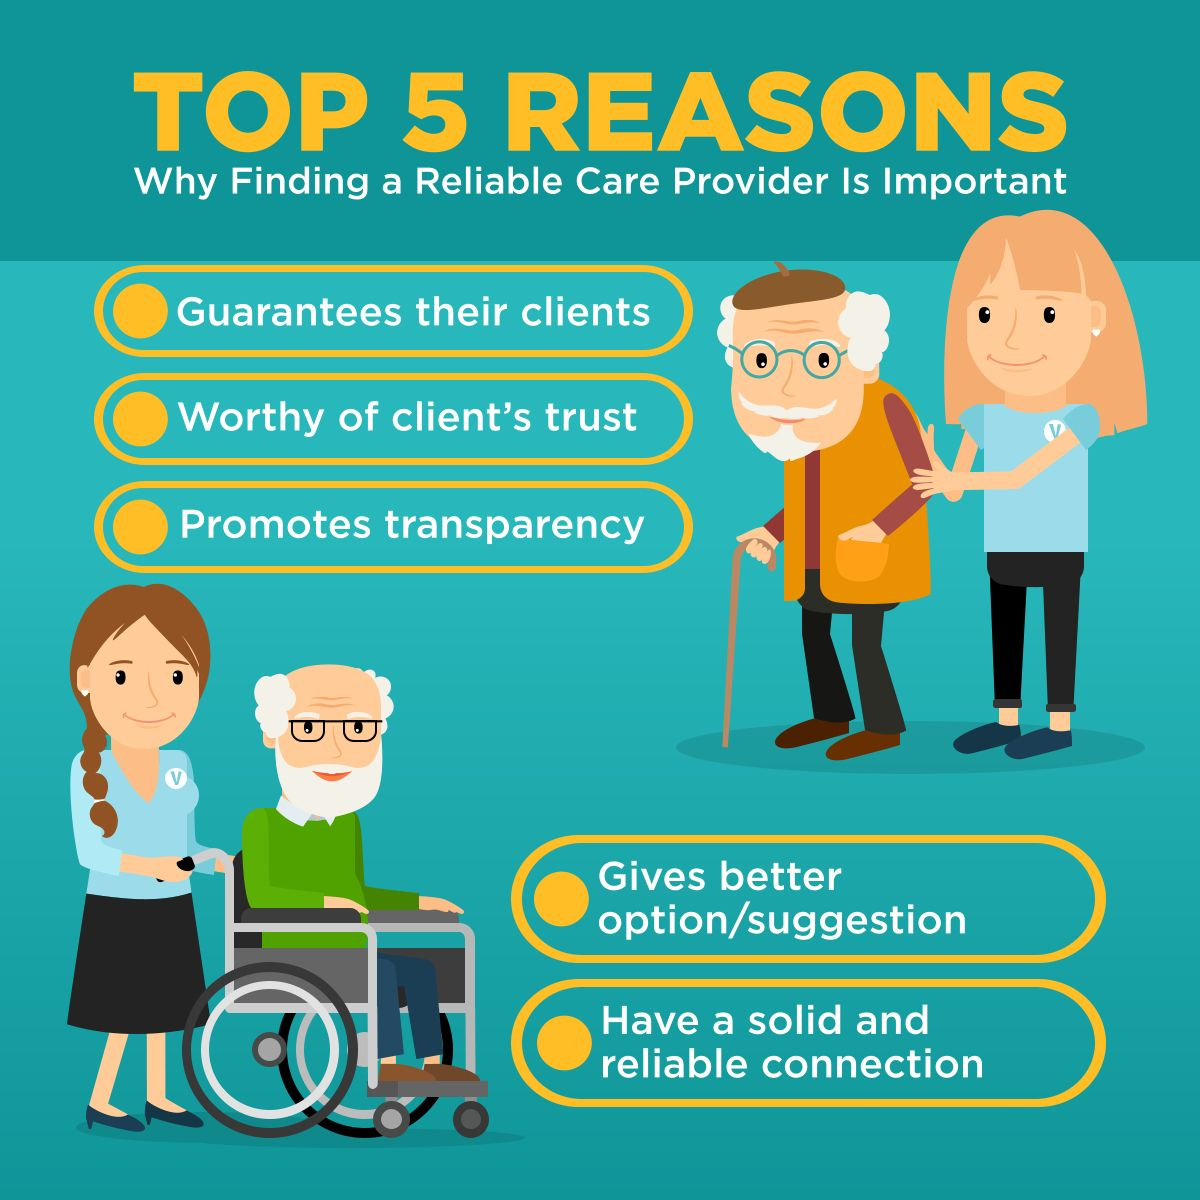 Top 5 Reasons Why Finding a Reliable Care Provider Is